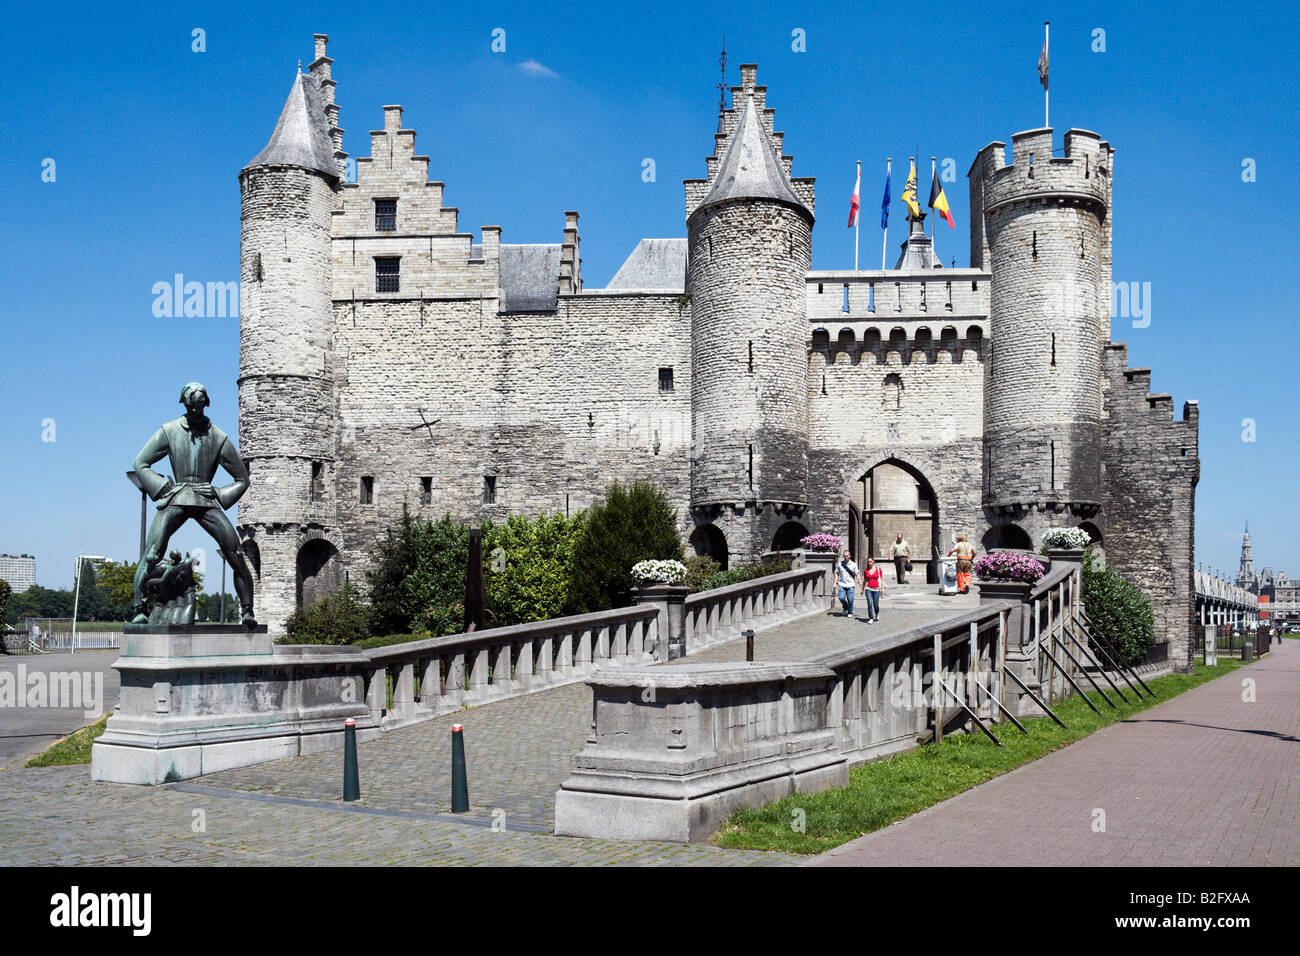 The Steen, Steinplein in the centre of the old town, Antwerp, Belgium - Stock Image